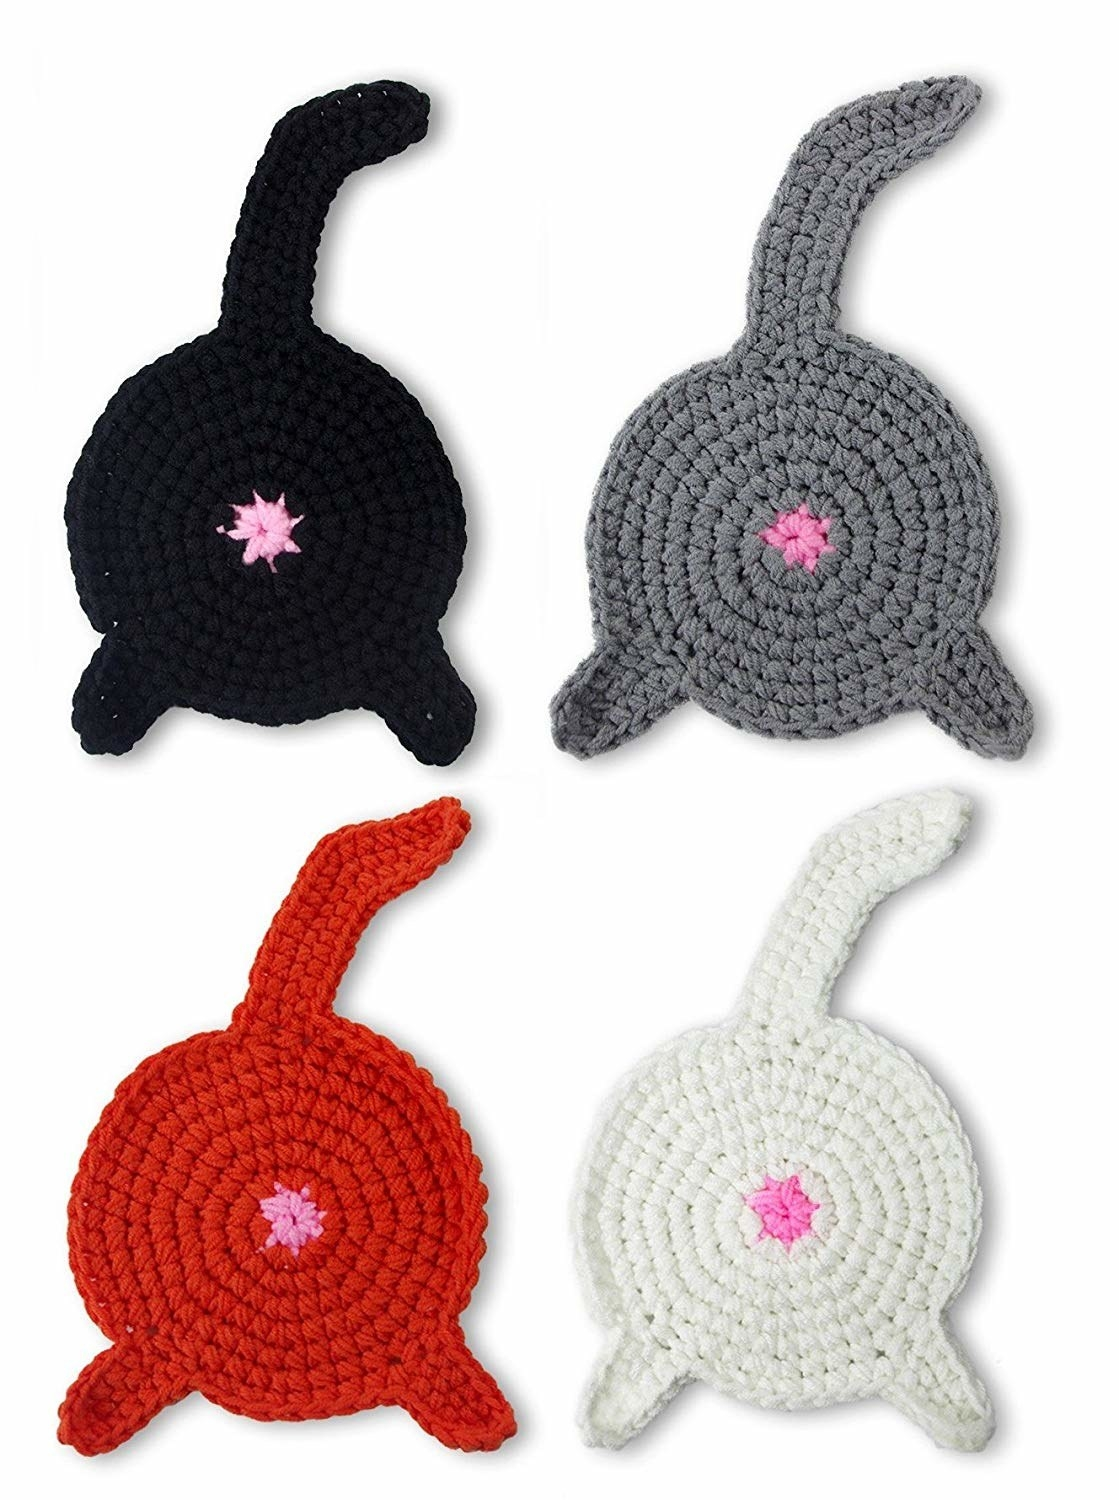 crochet coasters that look like cat butts